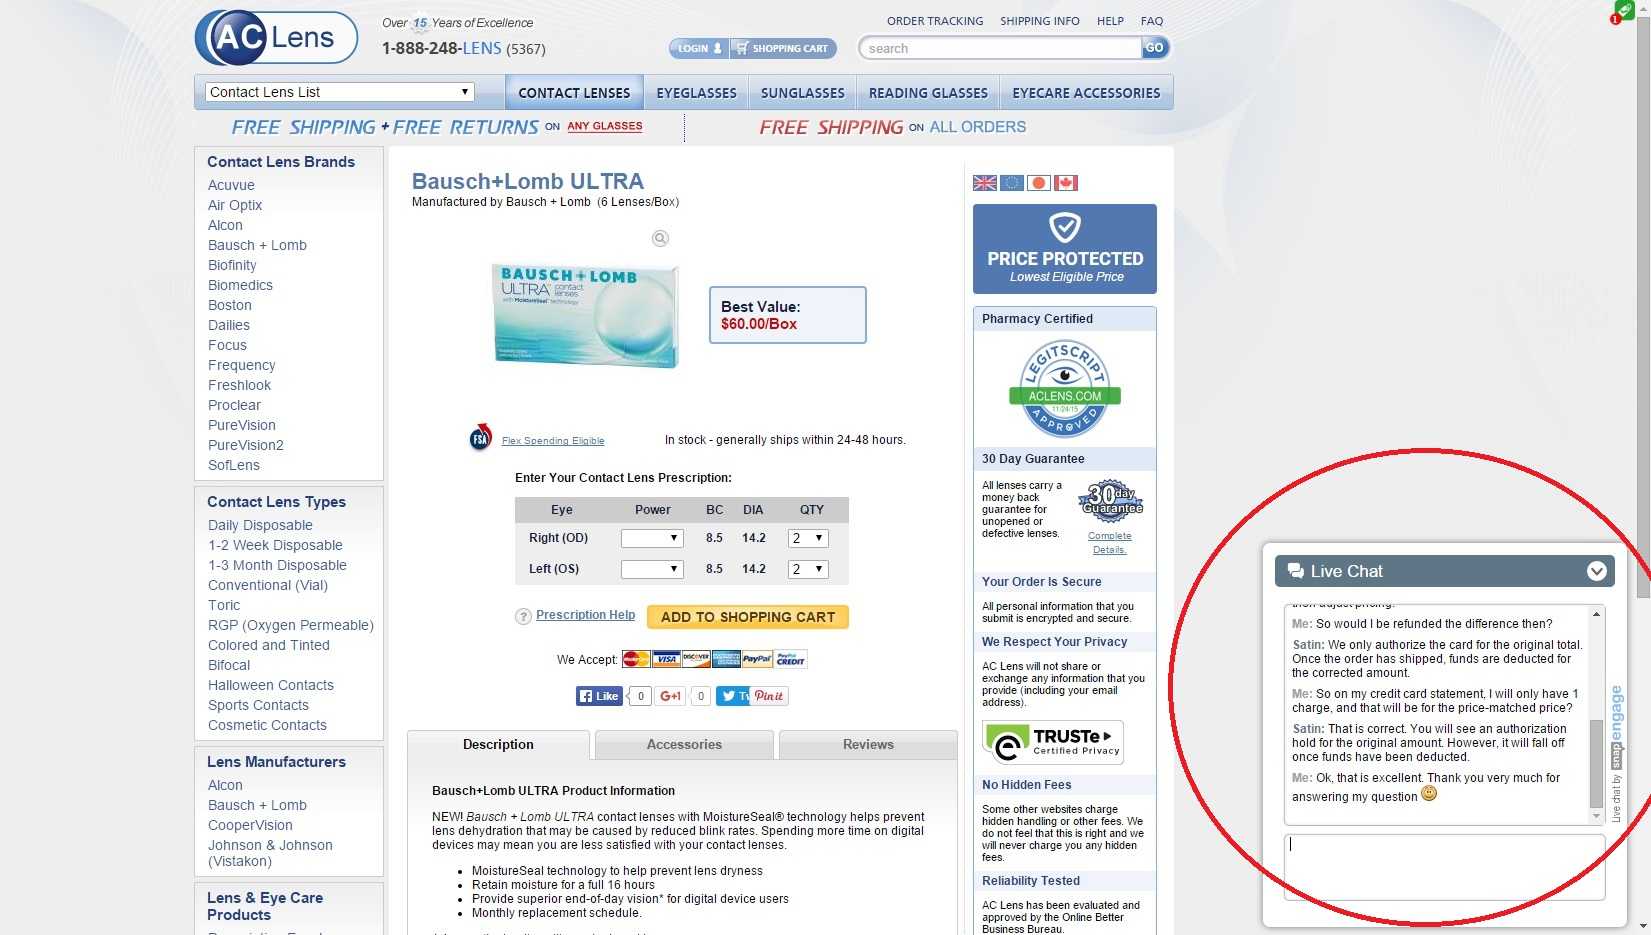 At Best Buy we bring technology products, services and solutions to people's lives in meaningful ways. Answer Client inquiries via email, phone or live chat in 27 days ago - save job - more - - Customer Service Representative Be the first to see new Best Buy Chat jobs. My email: Also get an email with jobs recommended just for me.